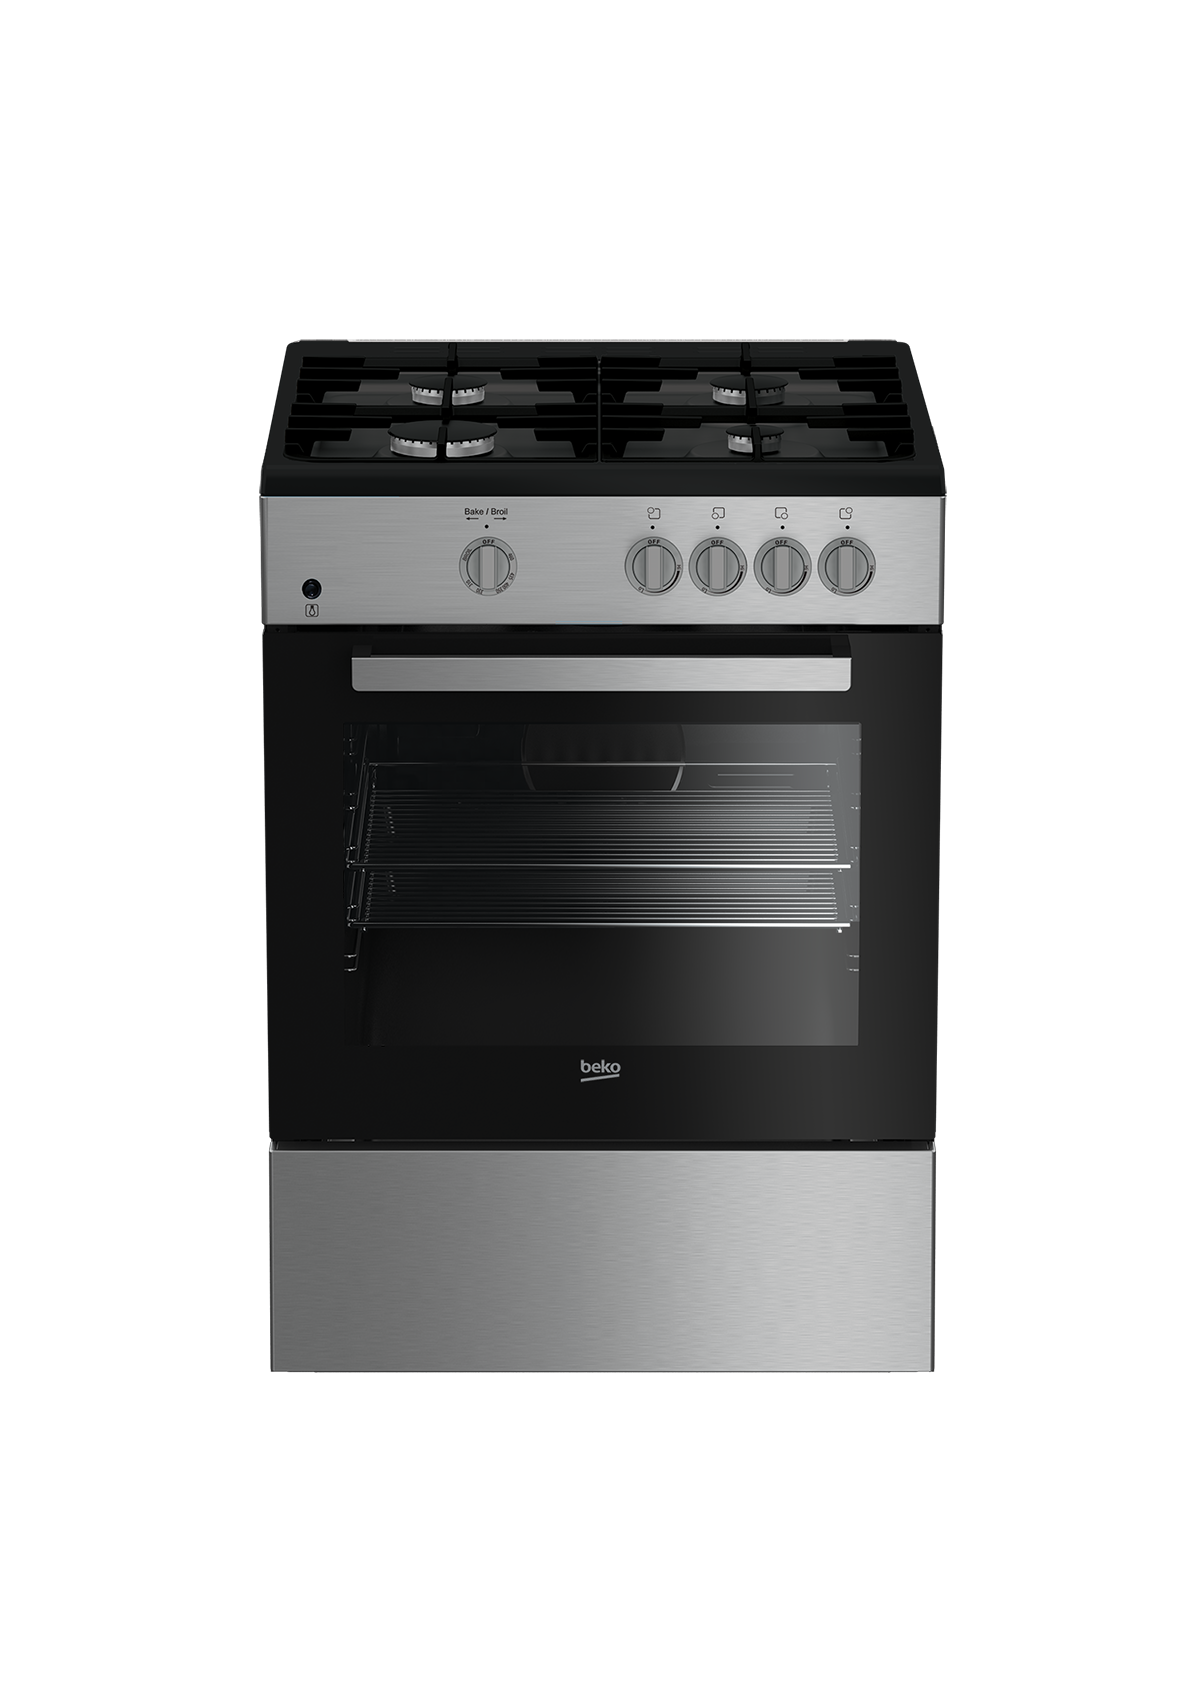 "24"" Stainless Steel Slide-In Gas Range SLGR24410SS"